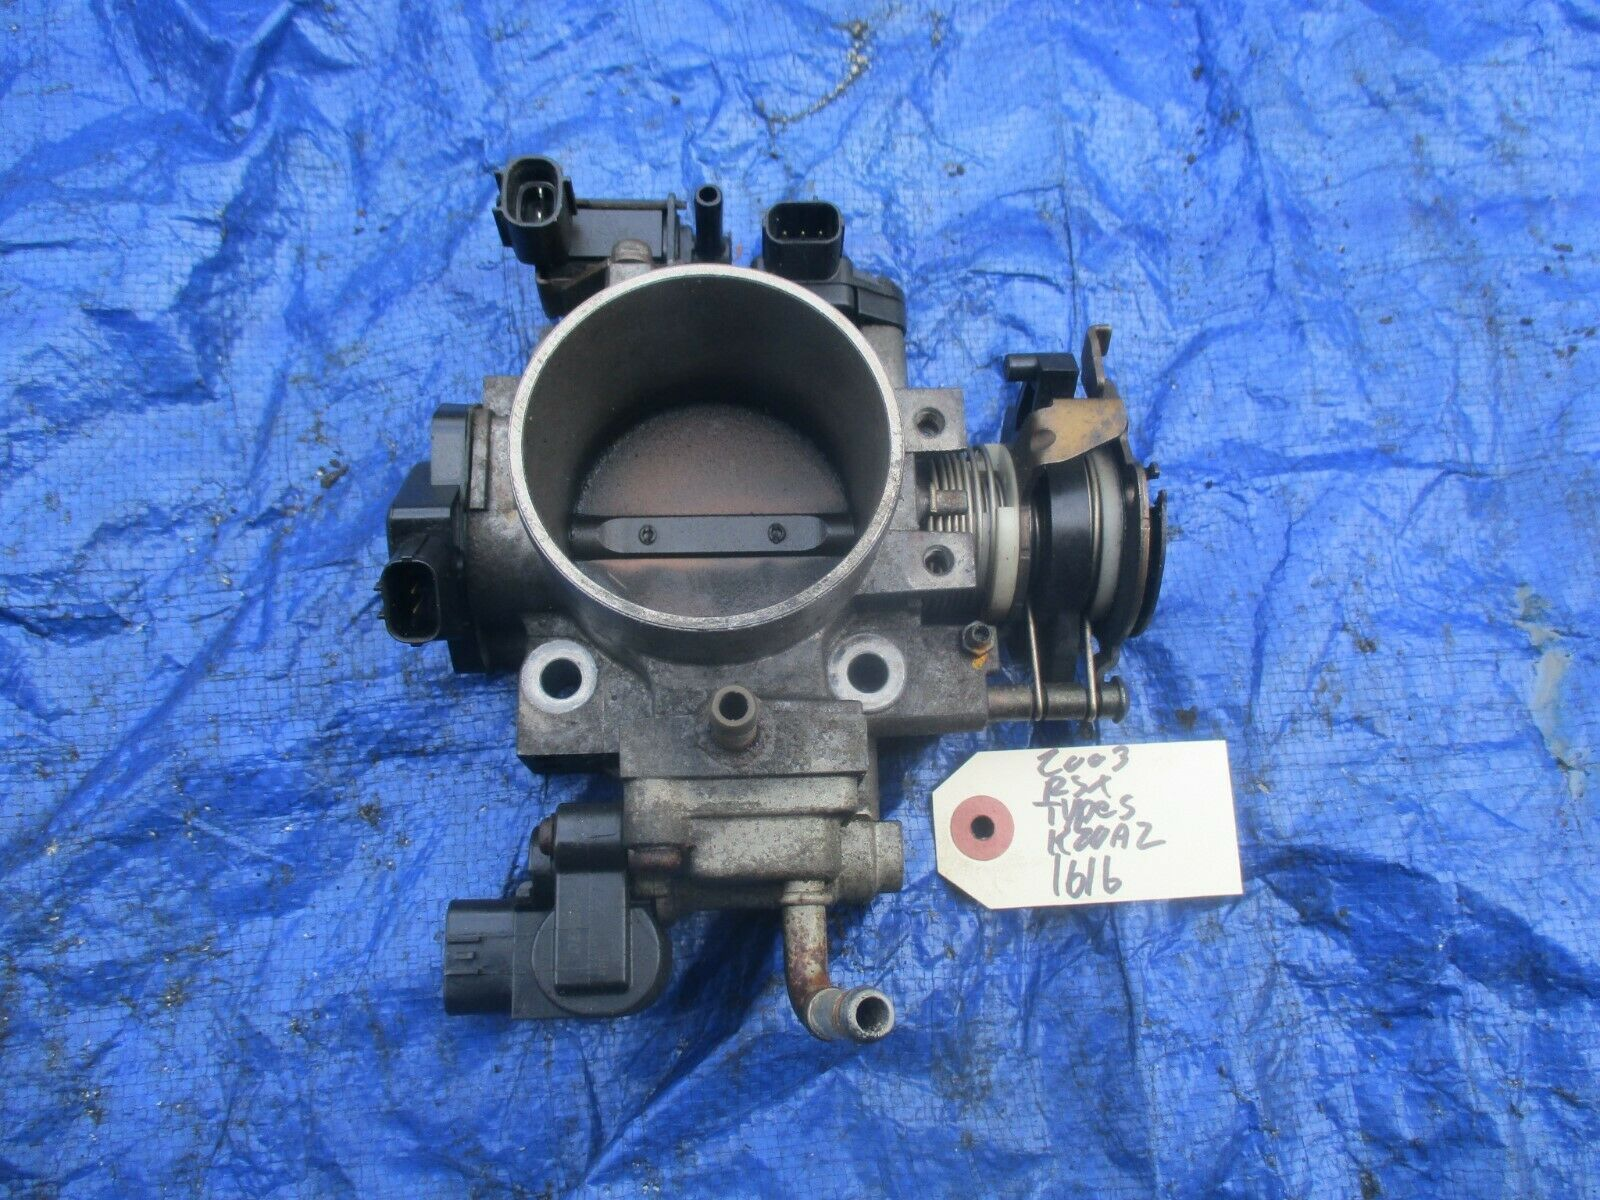 02-04 Acura RSX Type S K20A2 throttle body assembly OEM engine motor K20A TPS 16